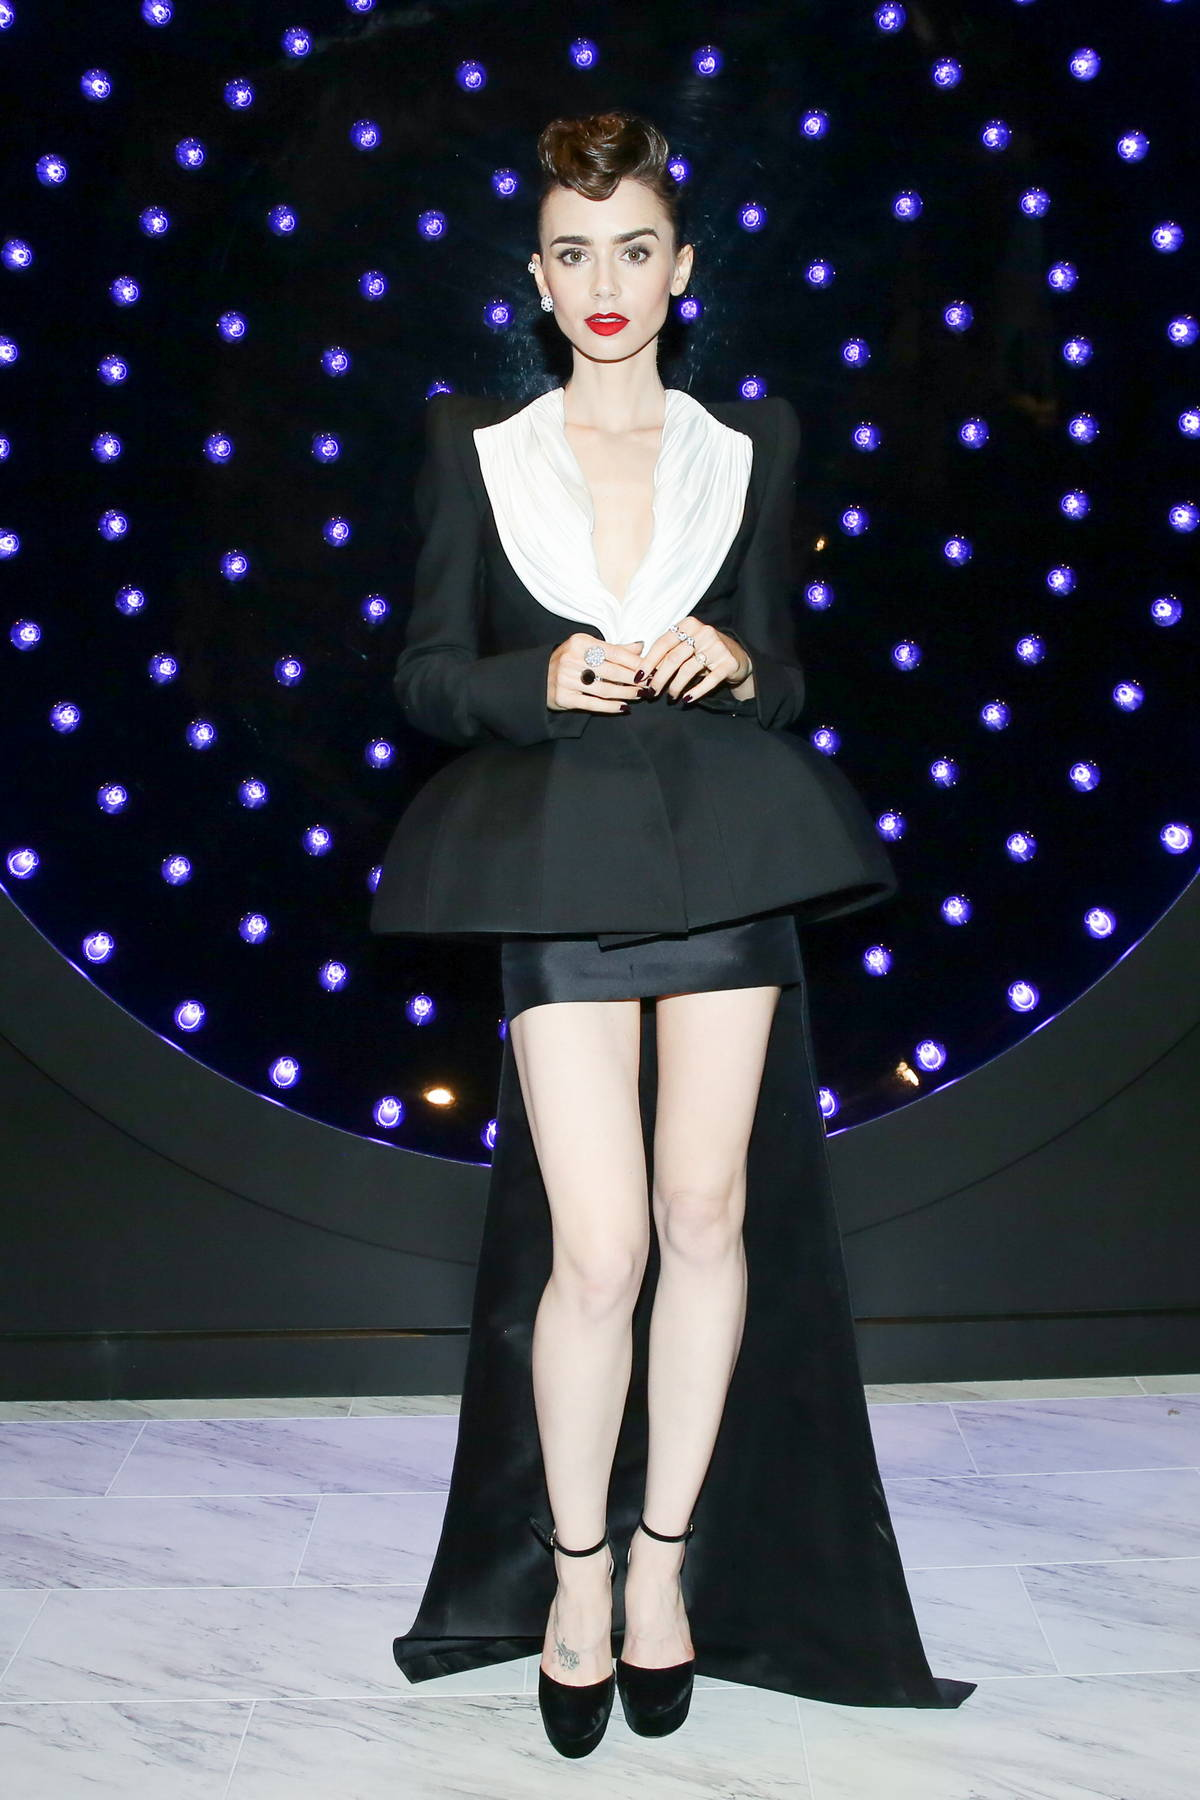 Lily Collins attends the Clash de Cartier event in West Hollywood, California